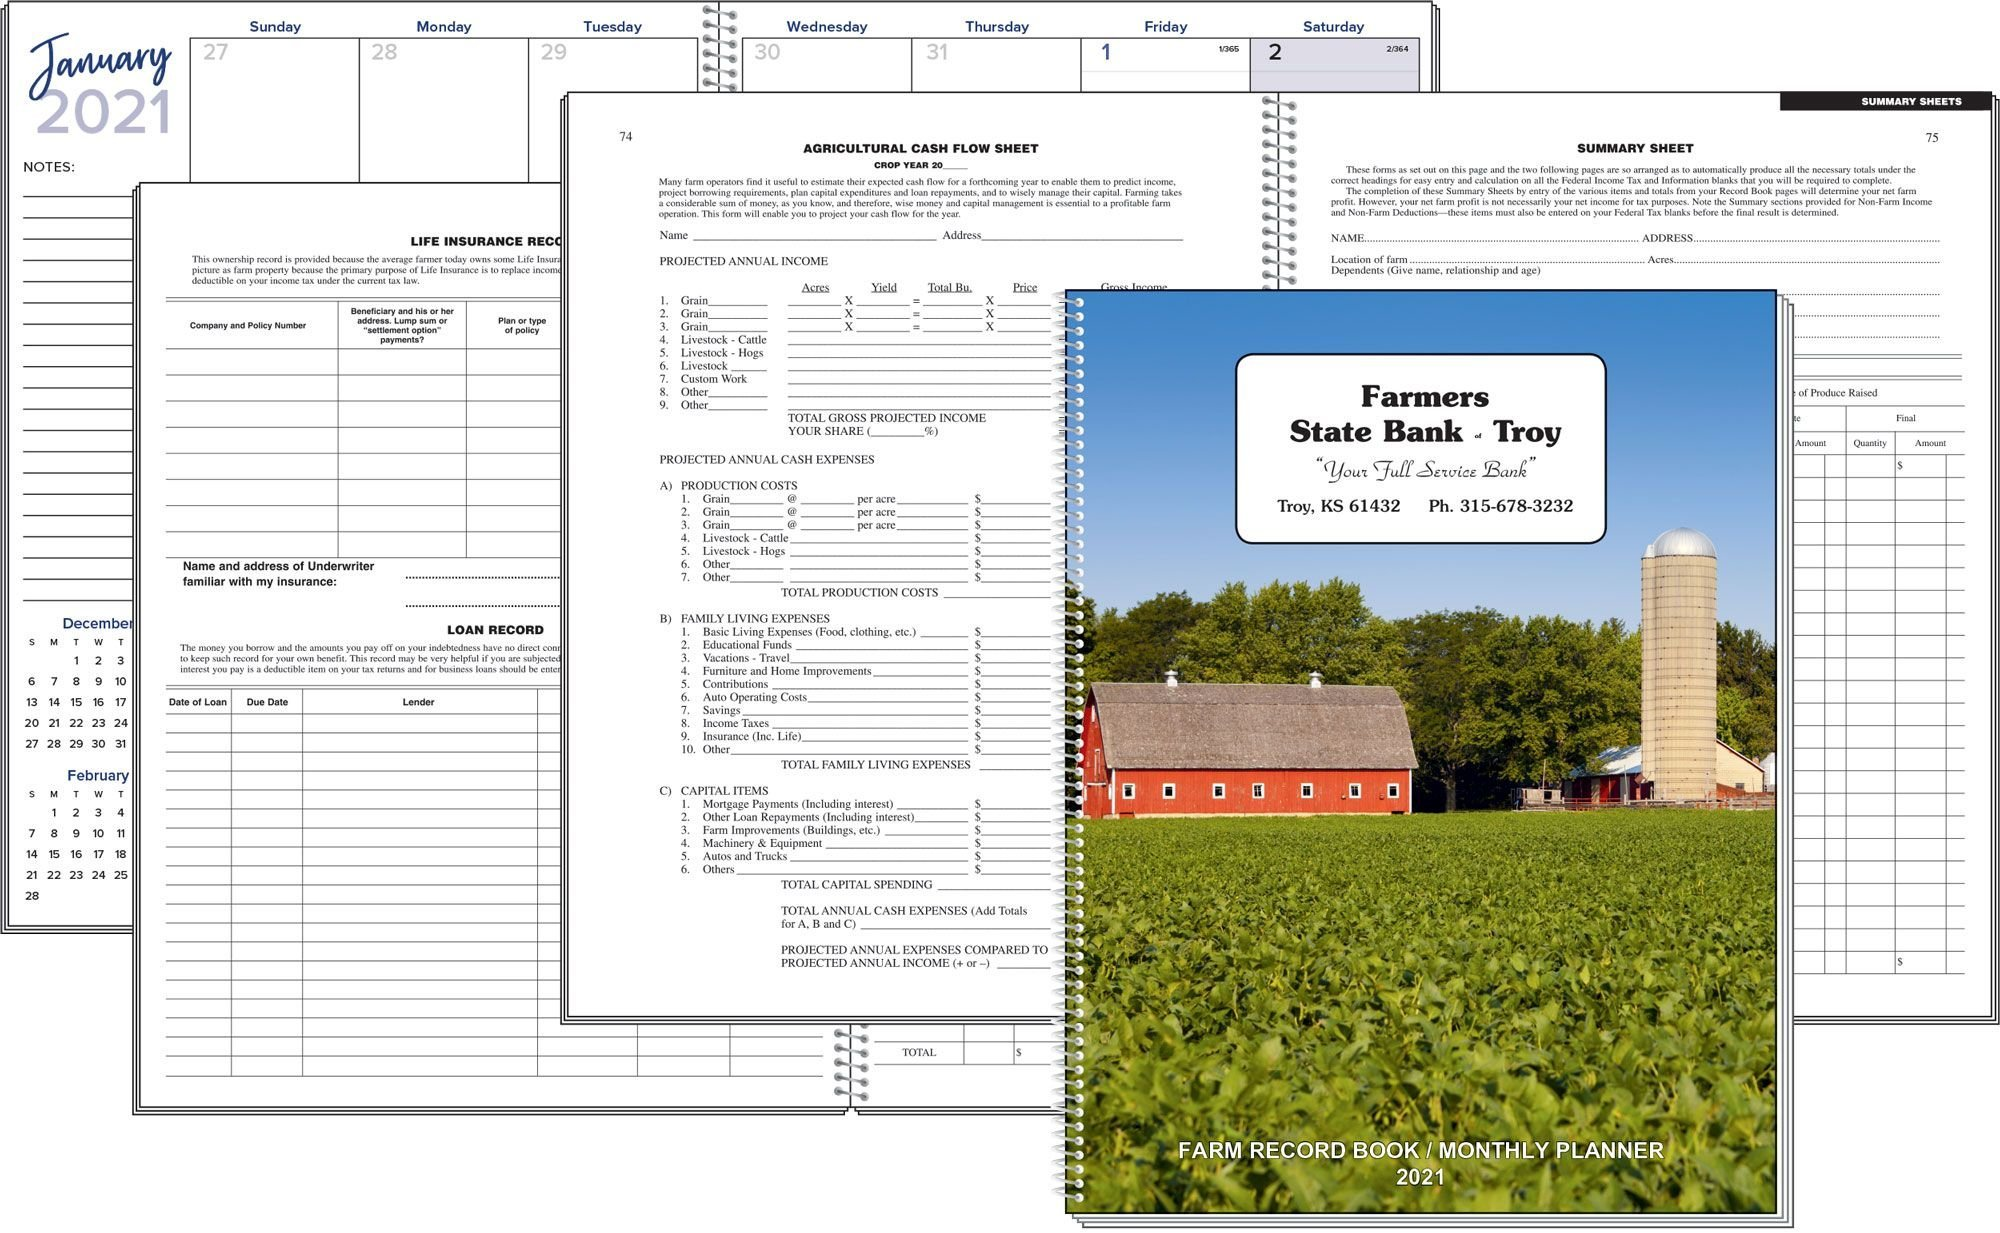 Farm Record Book And Monthly Plannerbagwell Promotions